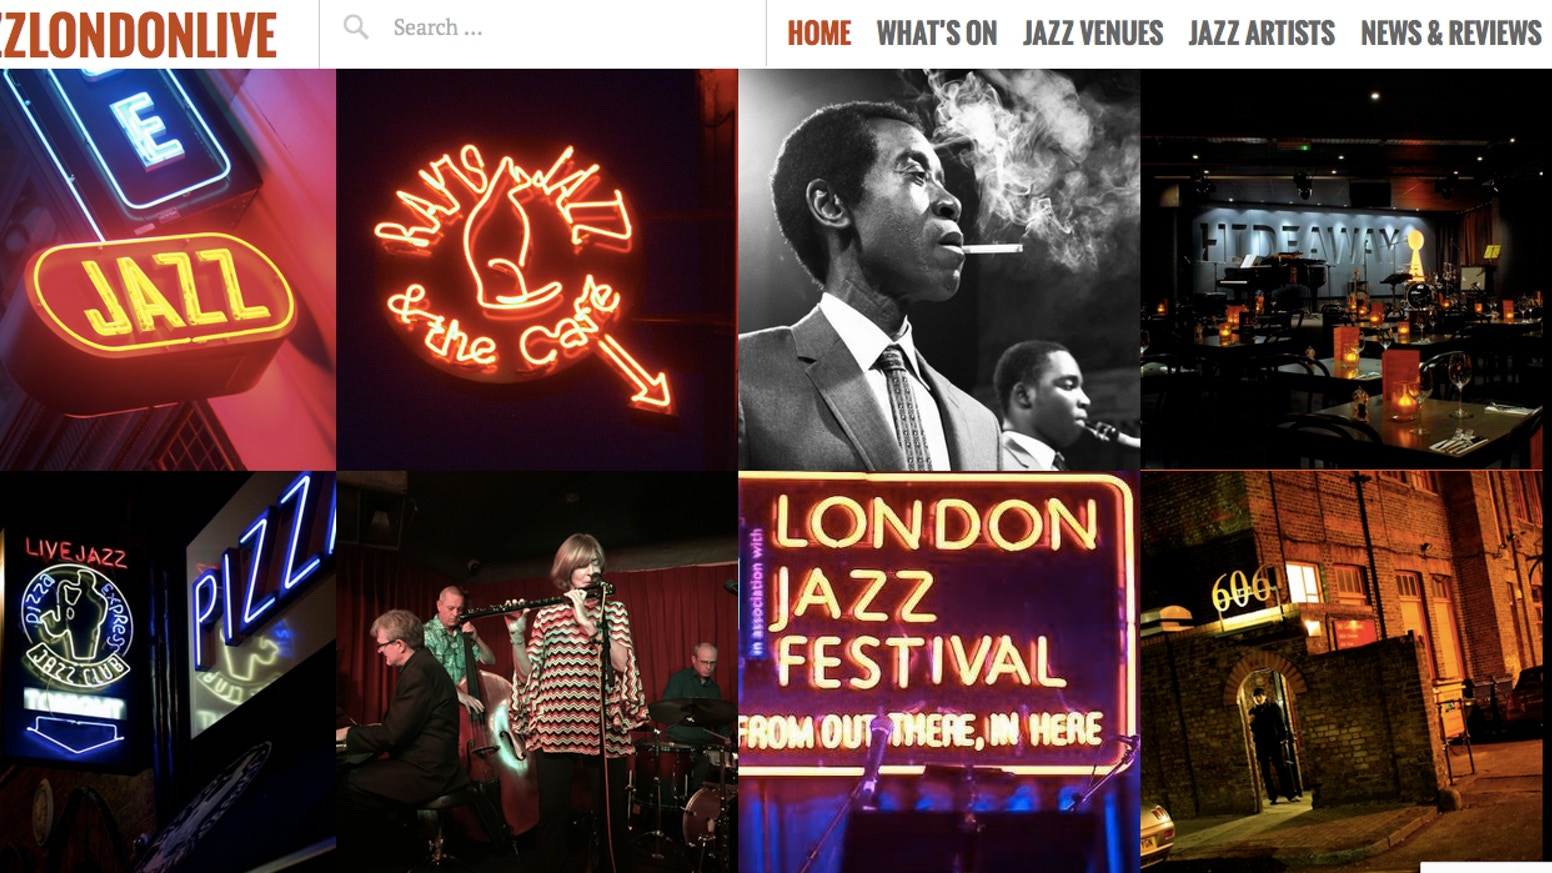 JazzLondonLive by Sarah Chaplin » JAZZLONDONLIVE now out on